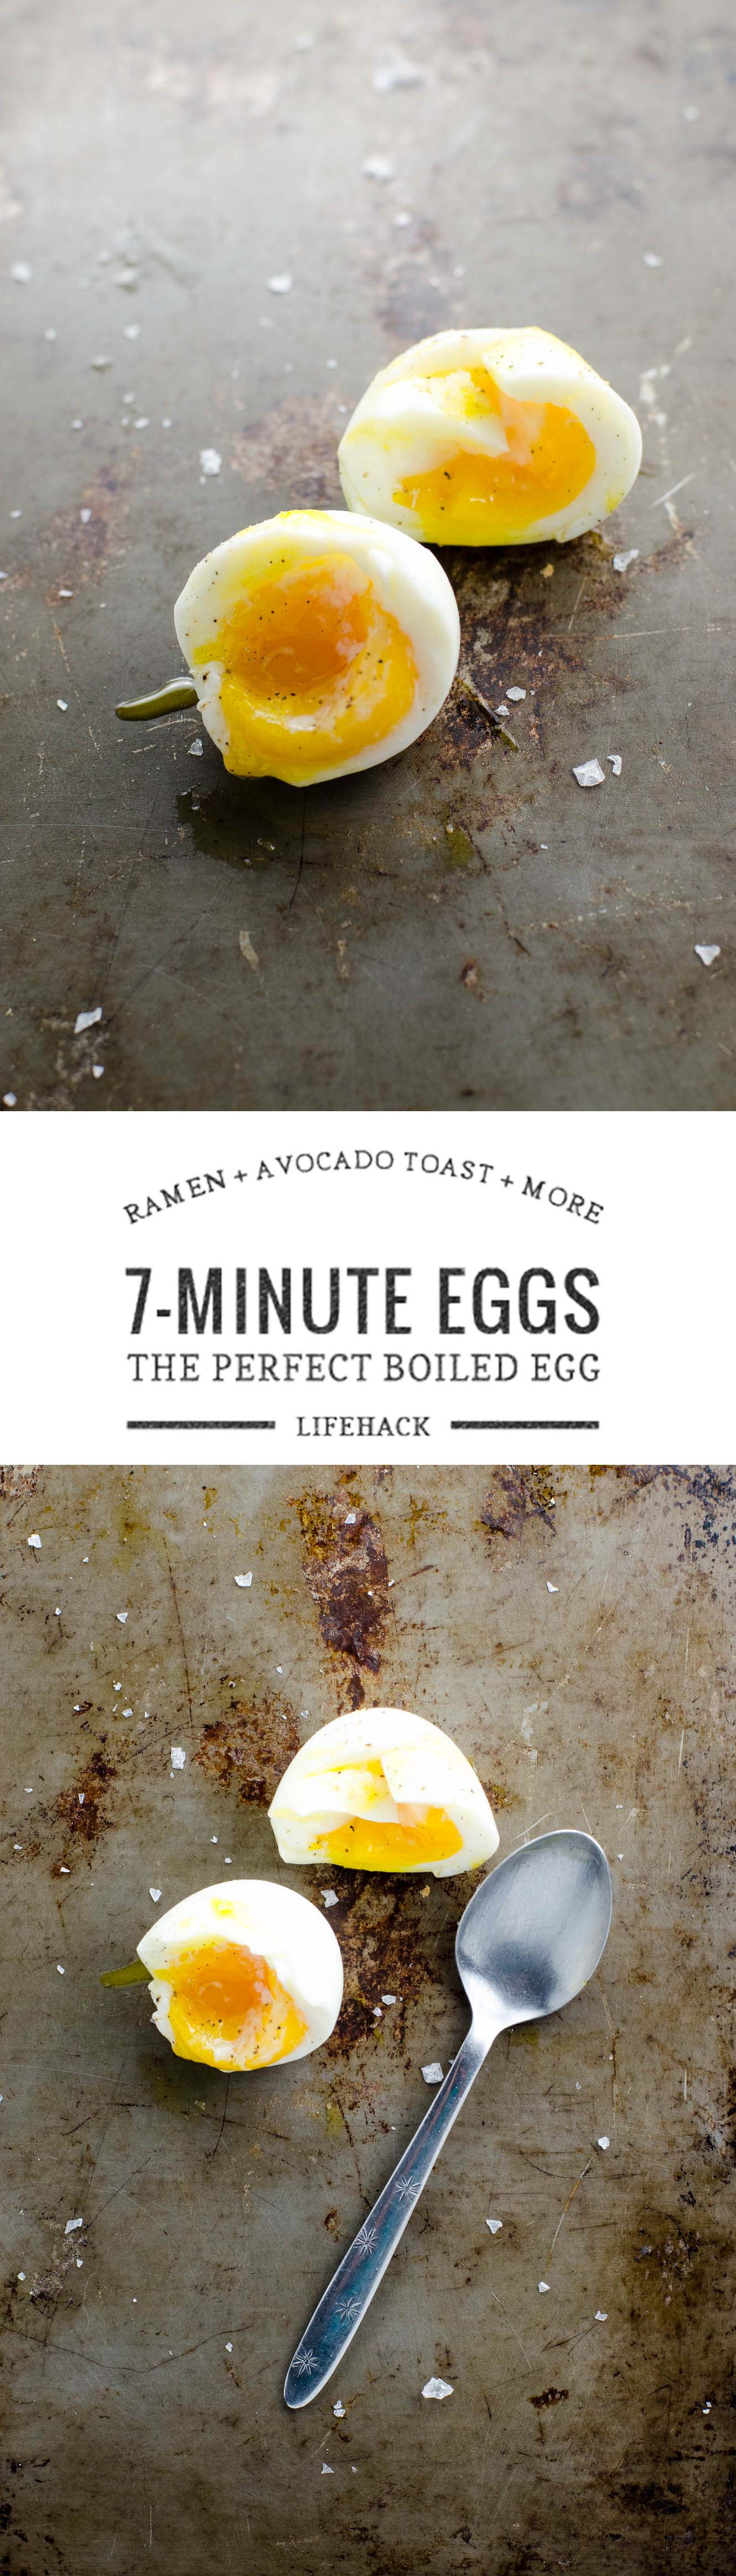 7-minute eggs are the best boiled eggs for everything from ramen to avocado toast to leftover pasta. They're consistent, easy to peel, and have jammy yolks and perfectly set whites.